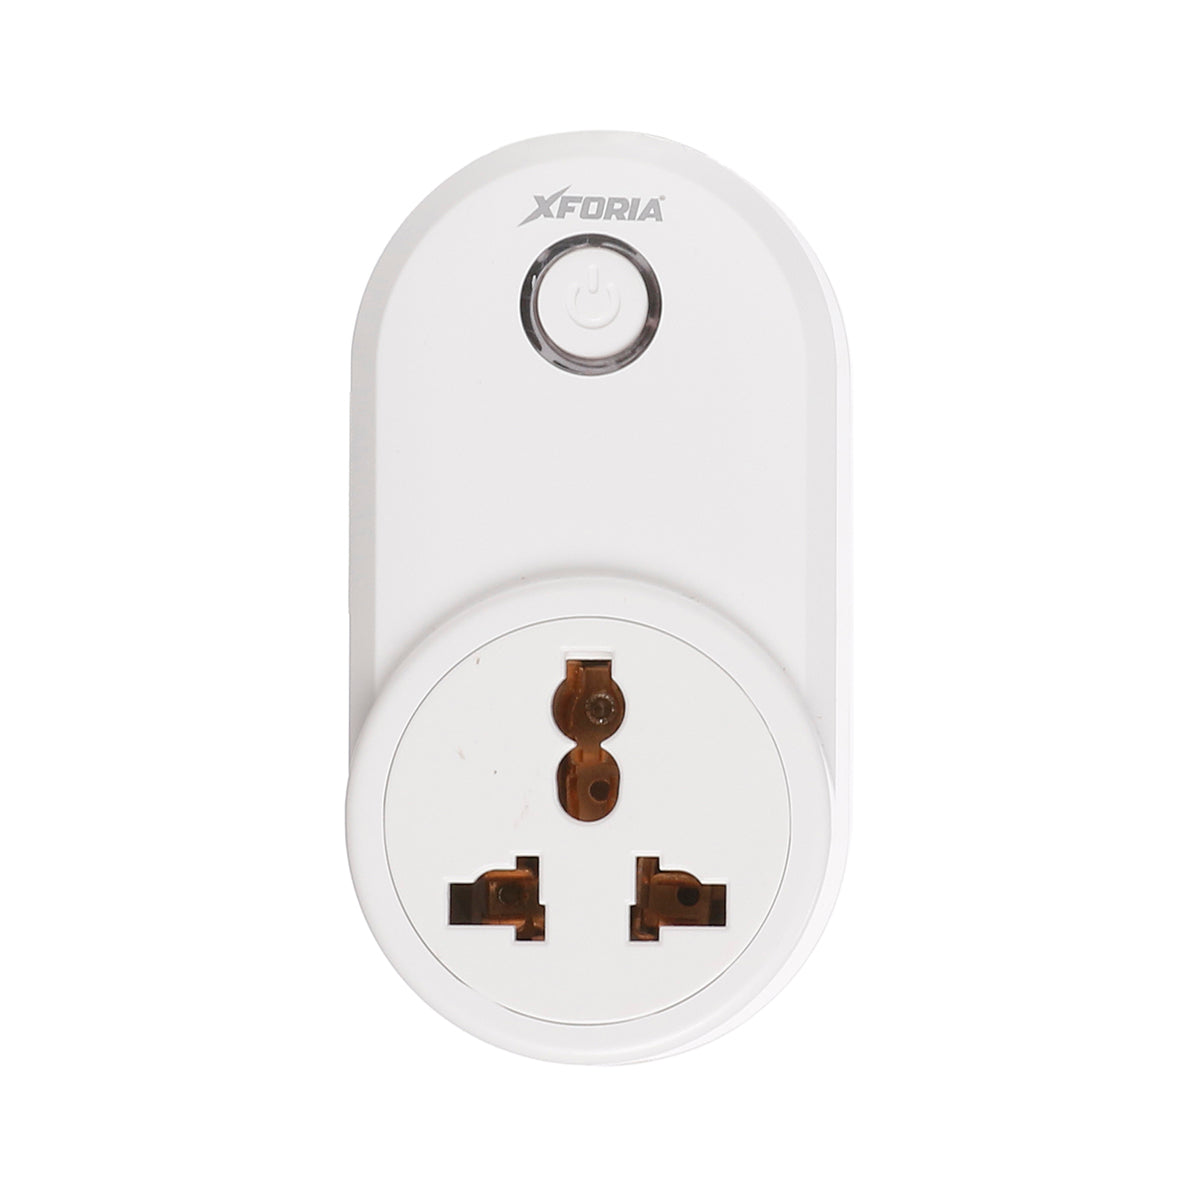 XFORIA 10A WiFi Smart Plug uitable for Appliances such as Televisions, Electric kettle, Table fans, Set top box, Air purifiers(Compatible with Alexa and Google Assistant)